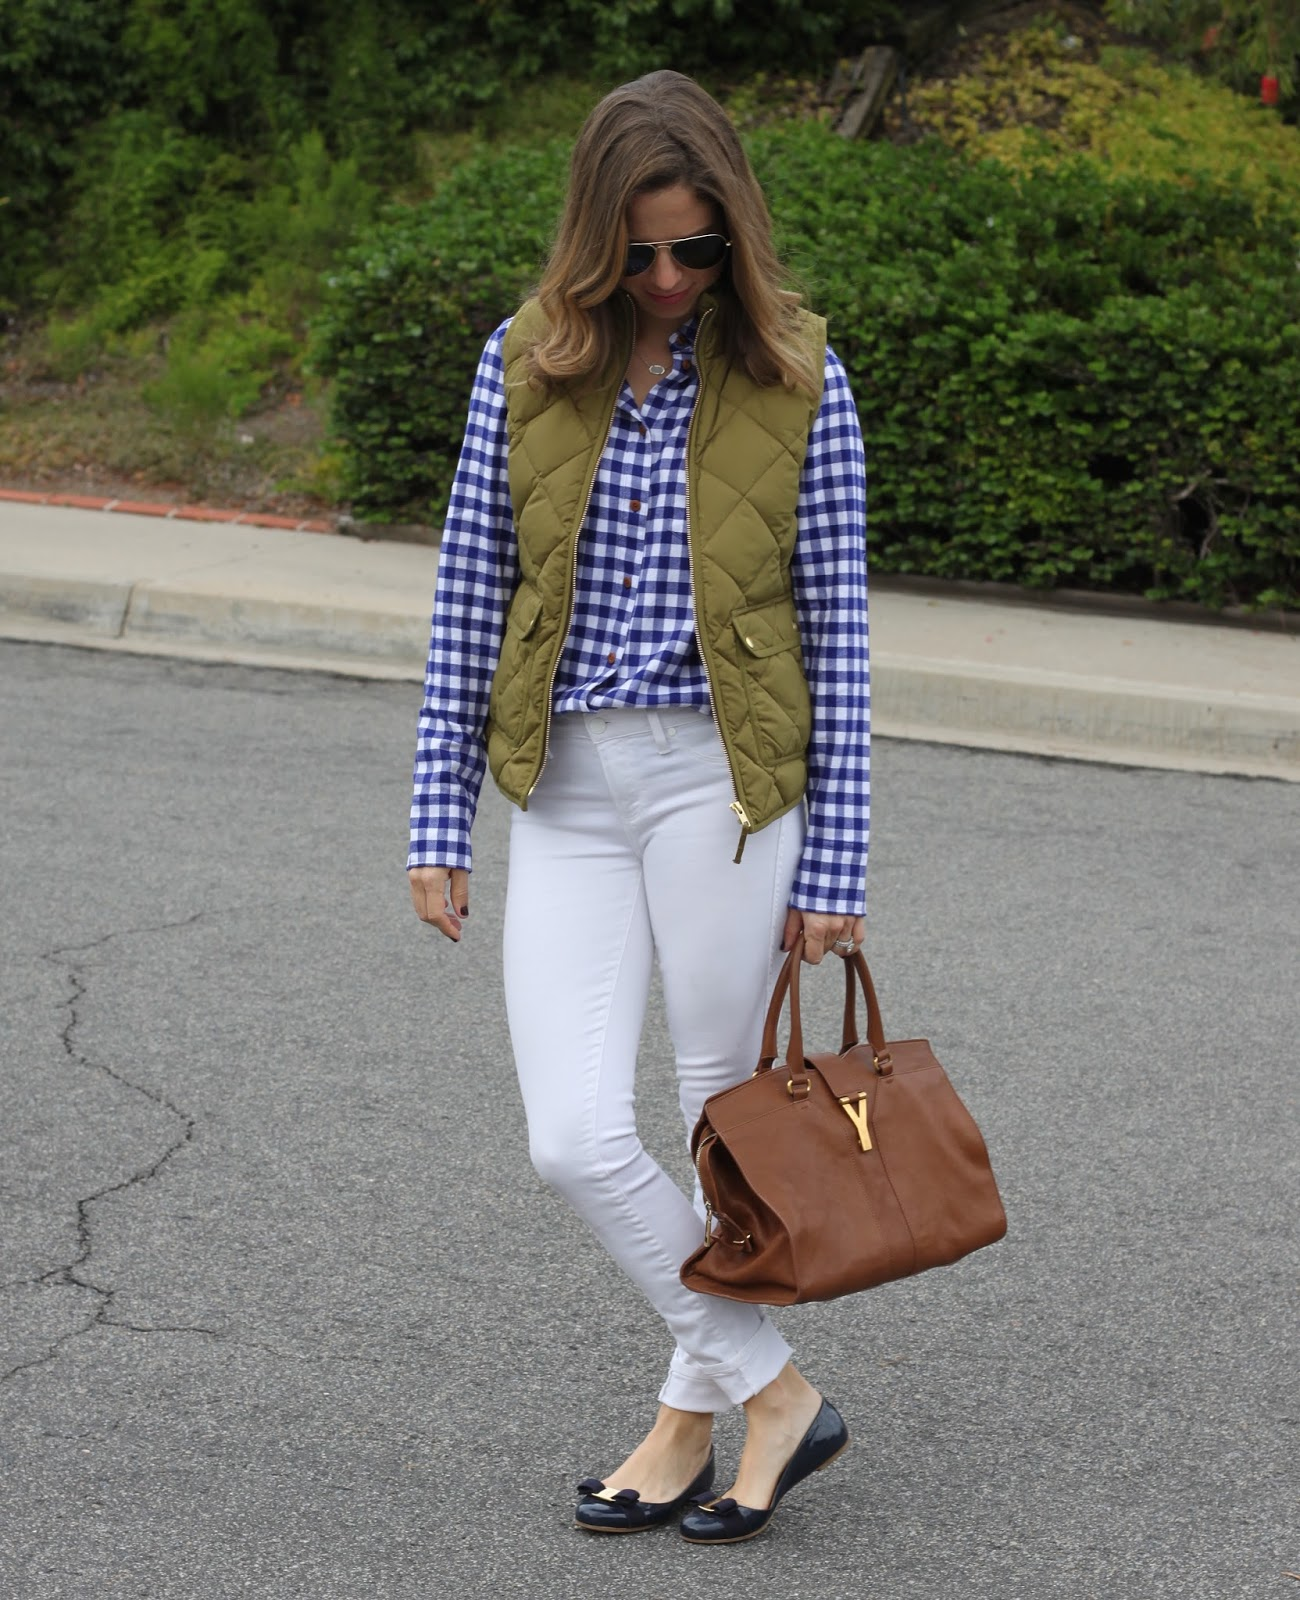 gingham shirt and vest